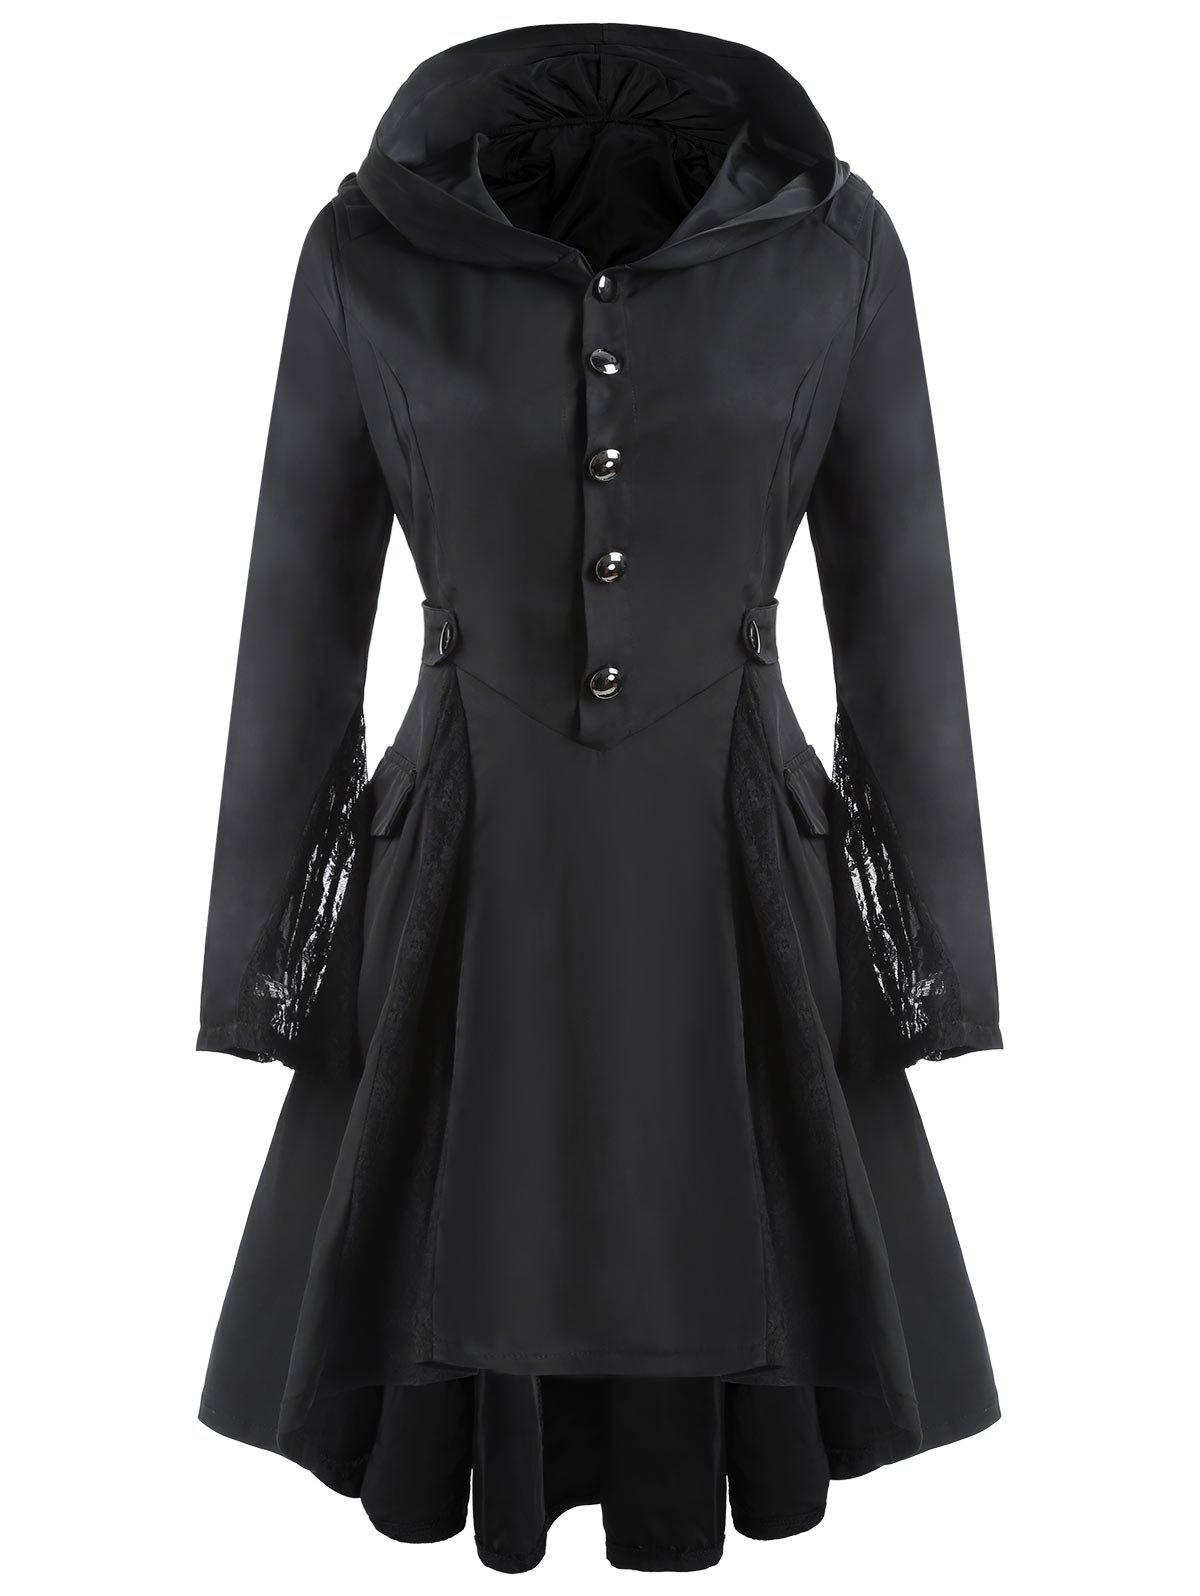 Hooded Lace Insert High Low Skirted CoatWOMEN<br><br>Size: L; Color: BLACK; Clothes Type: Jackets; Material: Polyester; Type: Skirted; Shirt Length: Long; Sleeve Length: Full; Collar: Hooded; Pattern Type: Patchwork; Embellishment: Patch Designs; Style: Punk; Season: Fall,Spring; With Belt: No; Weight: 0.4500kg; Package Contents: 1 x Coat;